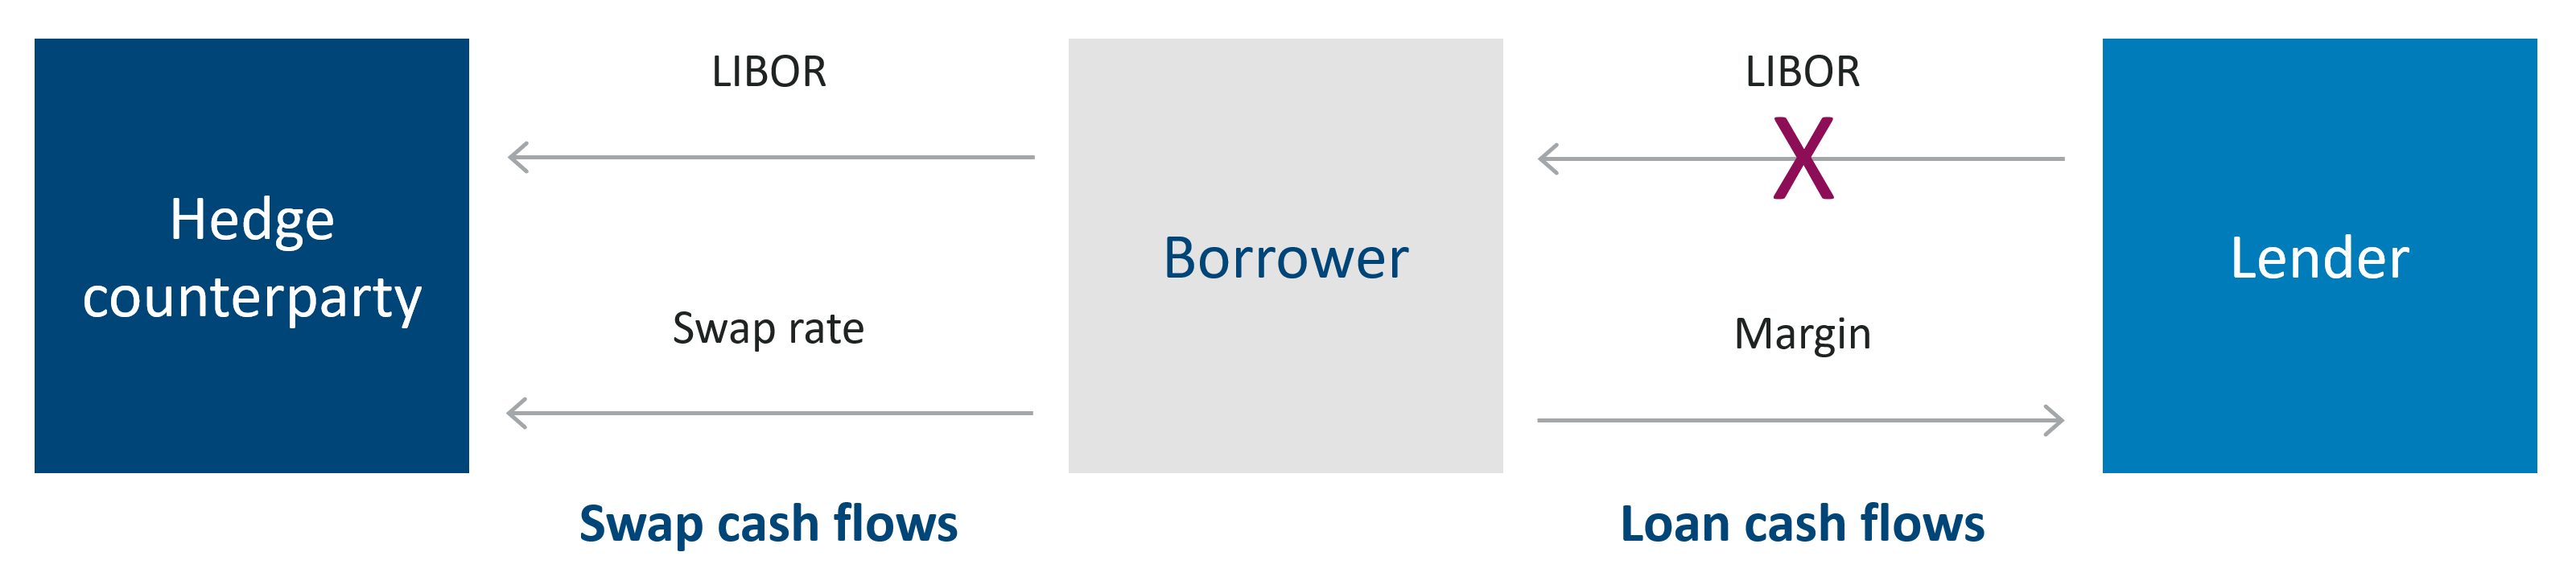 Swap and loan cash flows